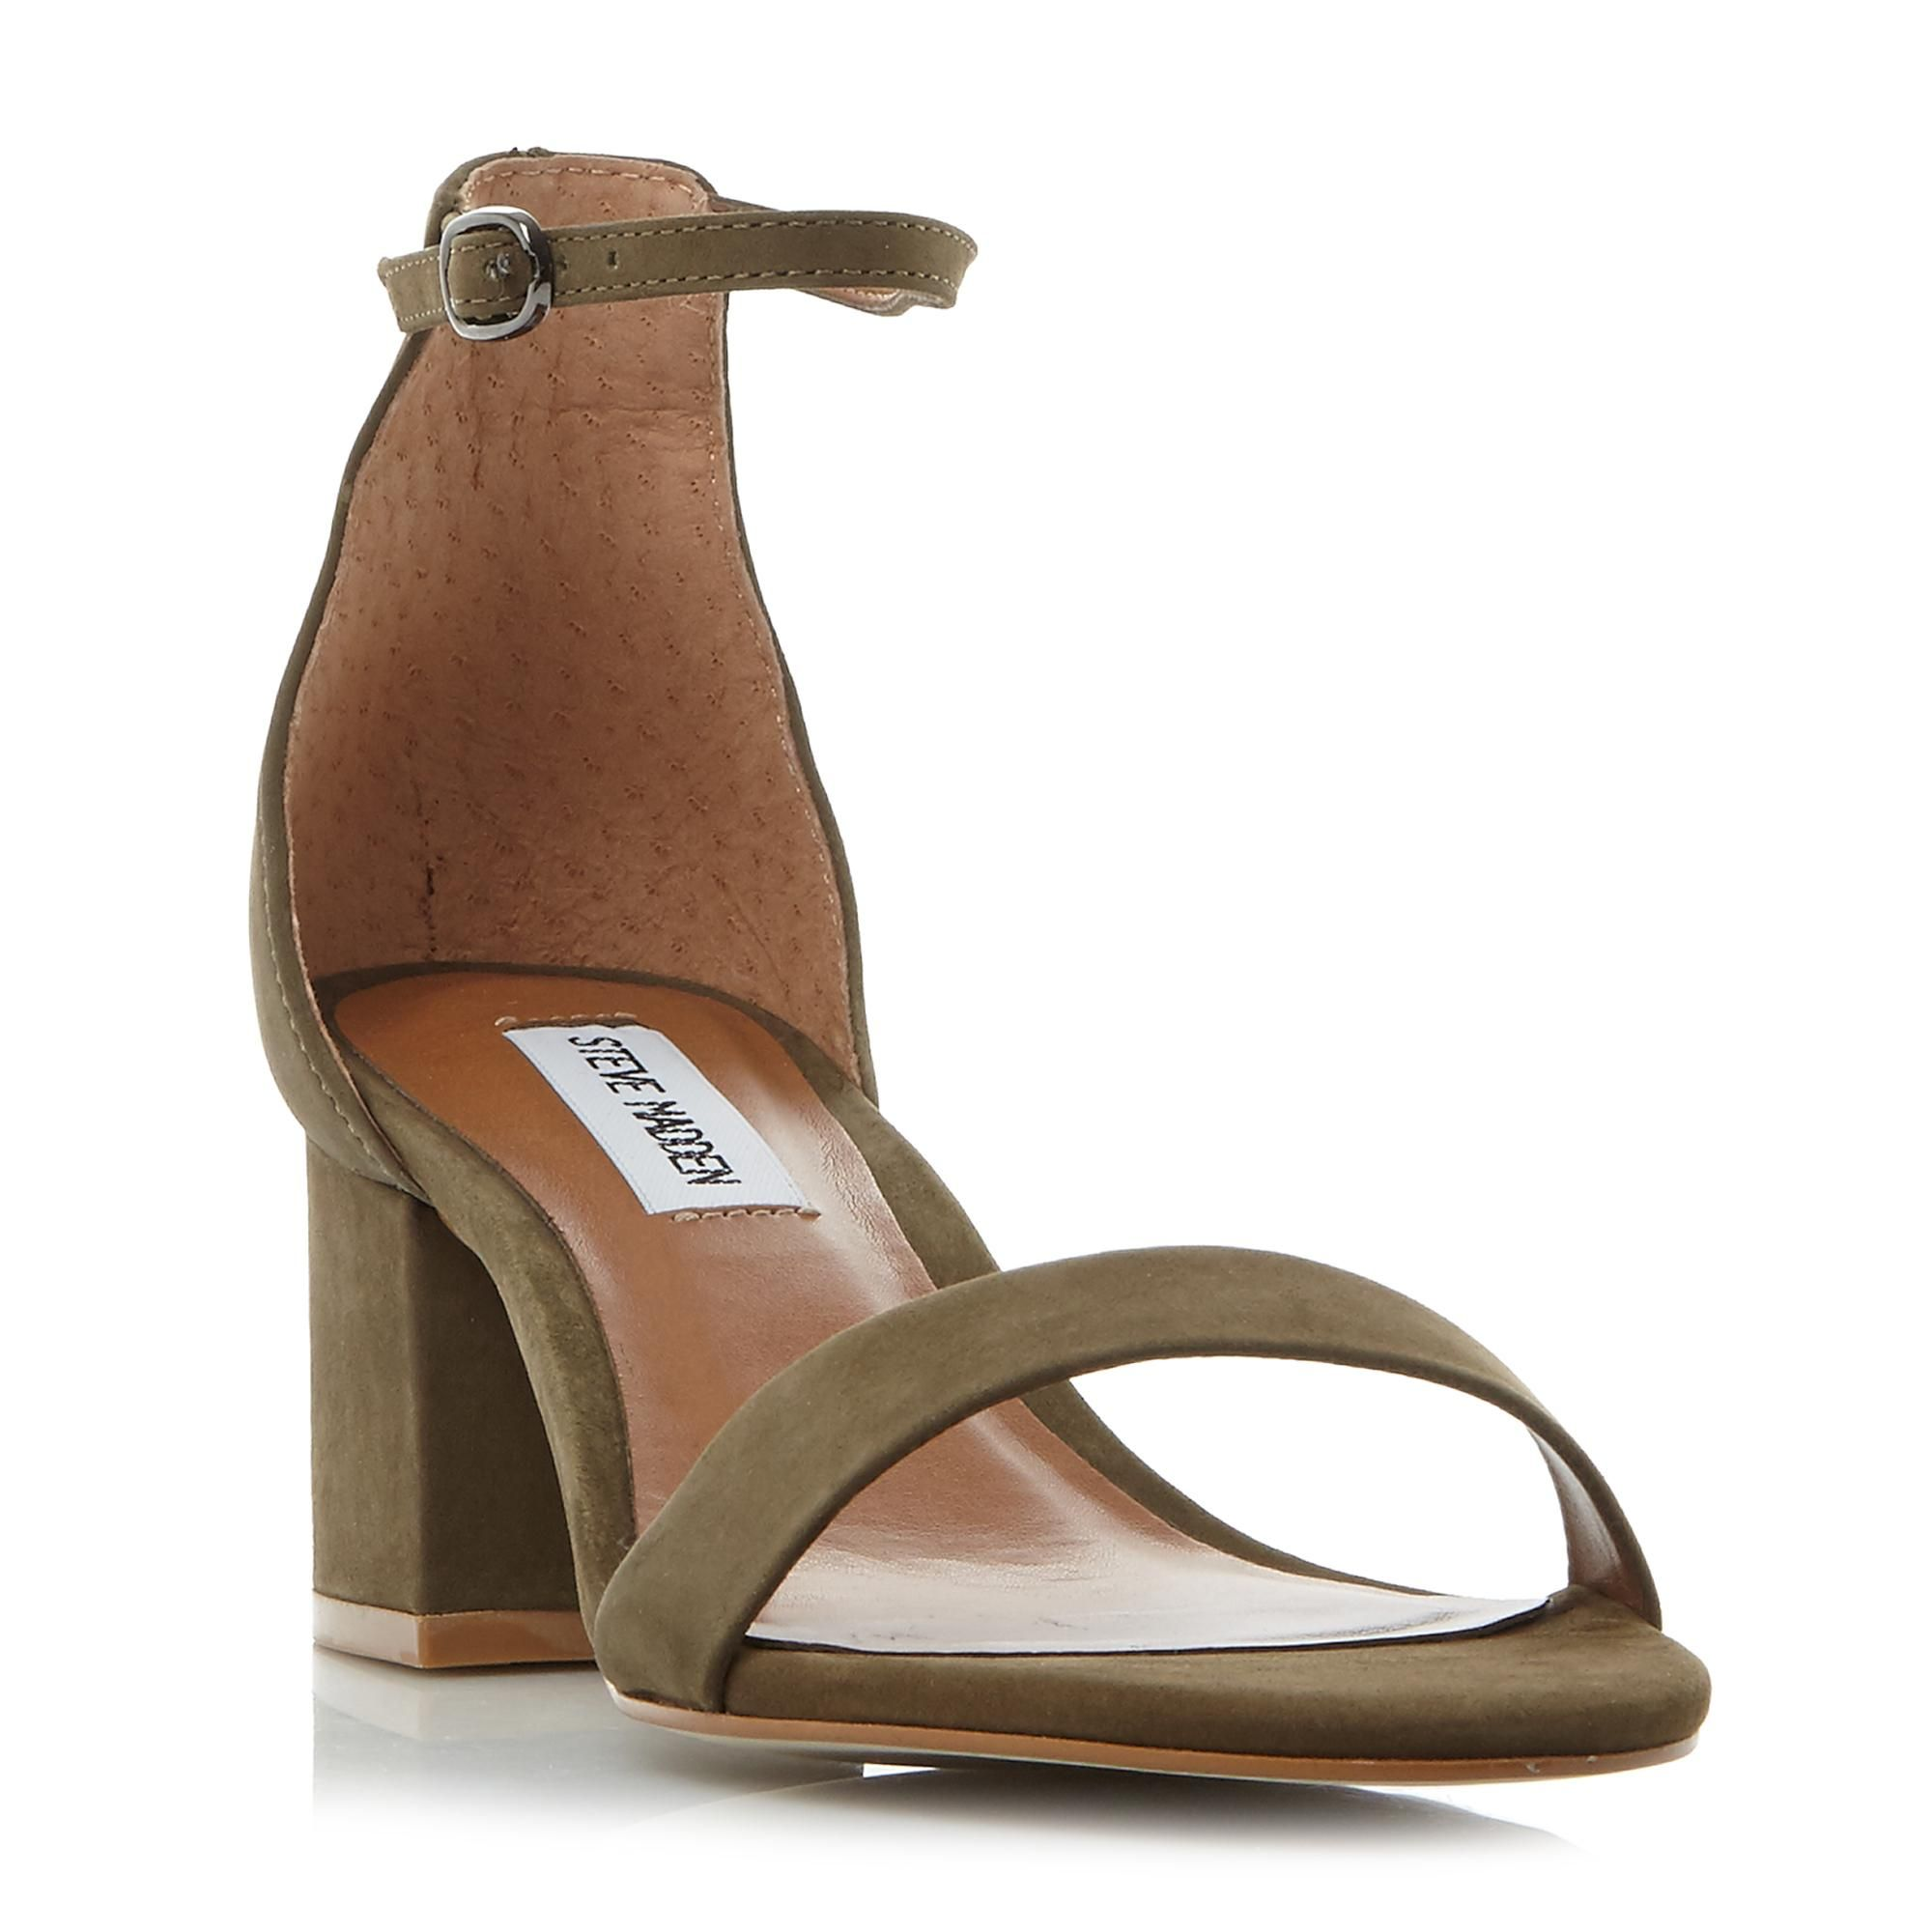 Steve Madden Ladies IRENEE SM Two Part Sandal in Khaki Size UK 8